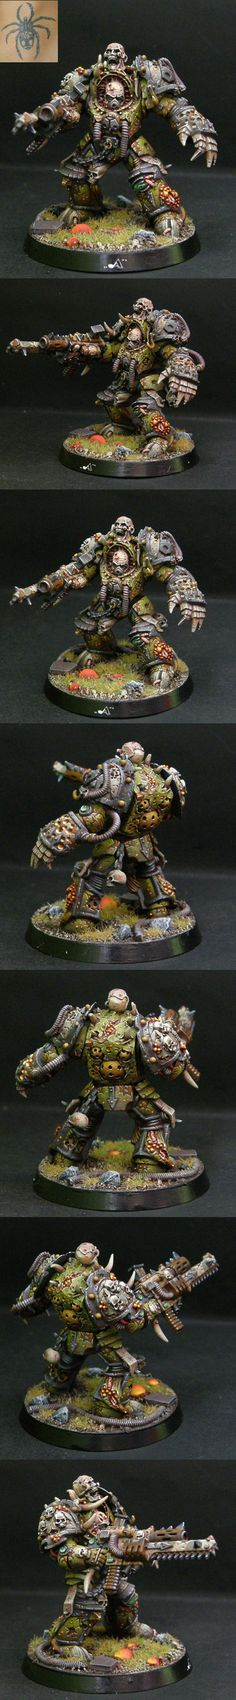 CoolMiniOrNot - DEATH GUARD TERMINATOR with forgeword part by Artur